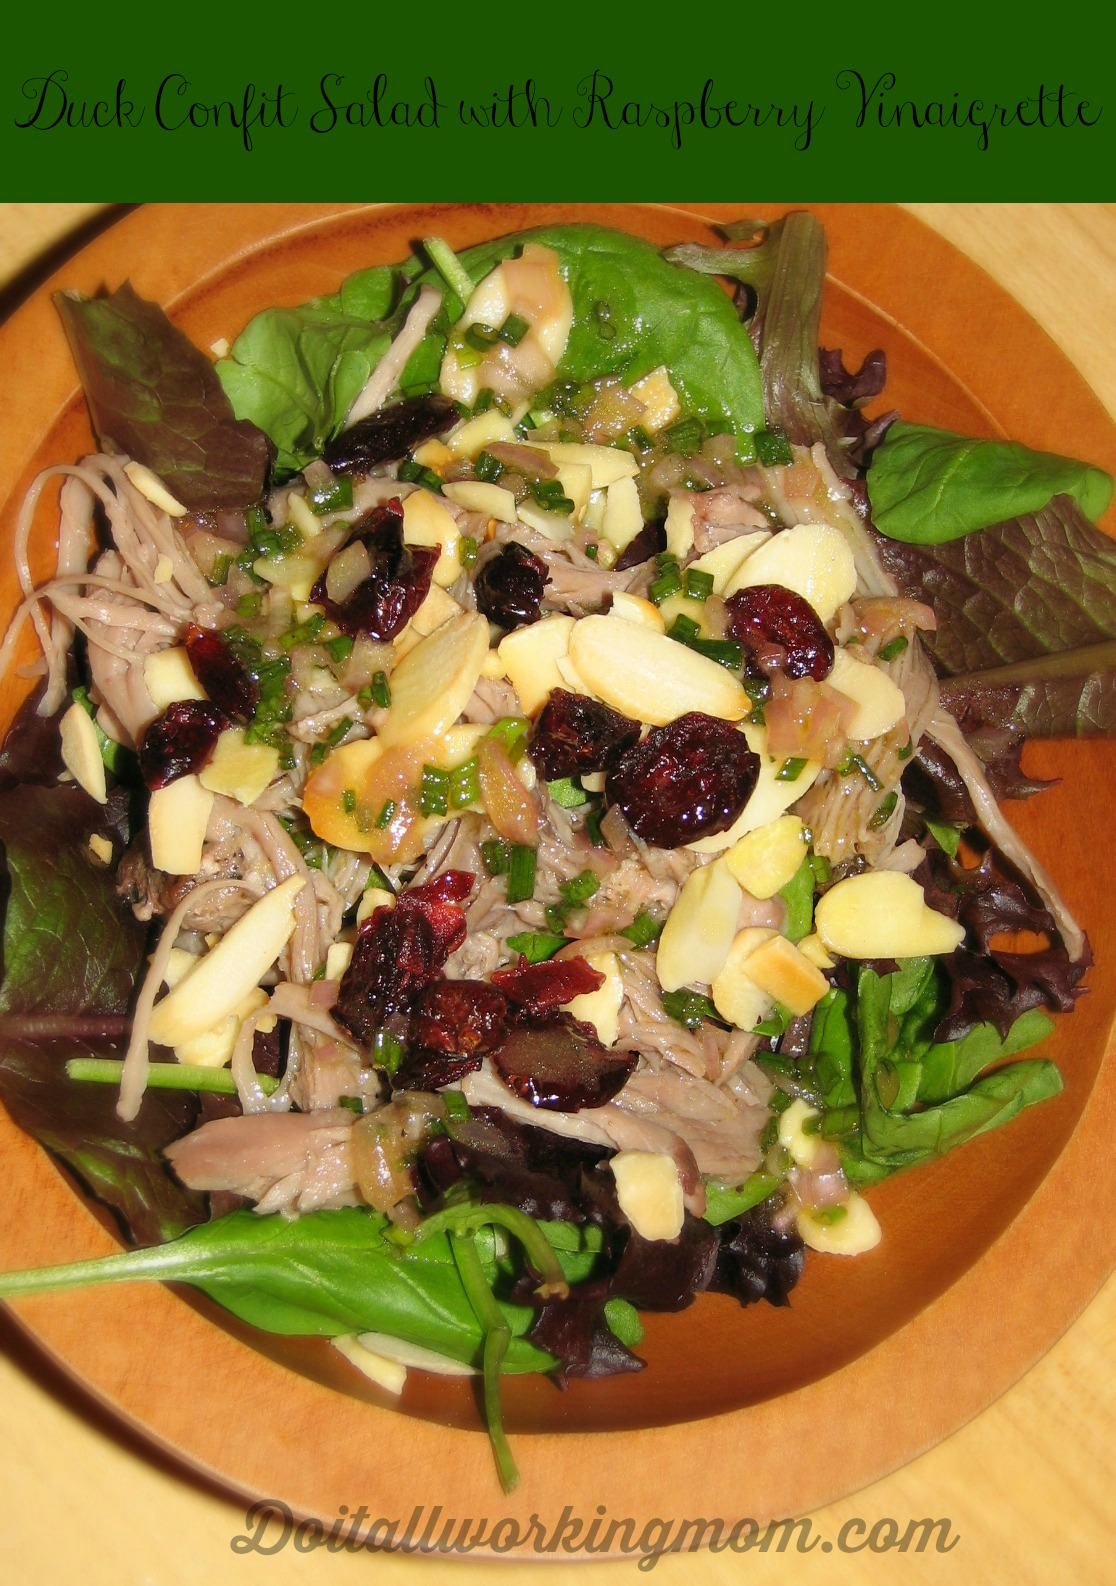 Duck Confit Salad wit Raspberry Vinaigrette